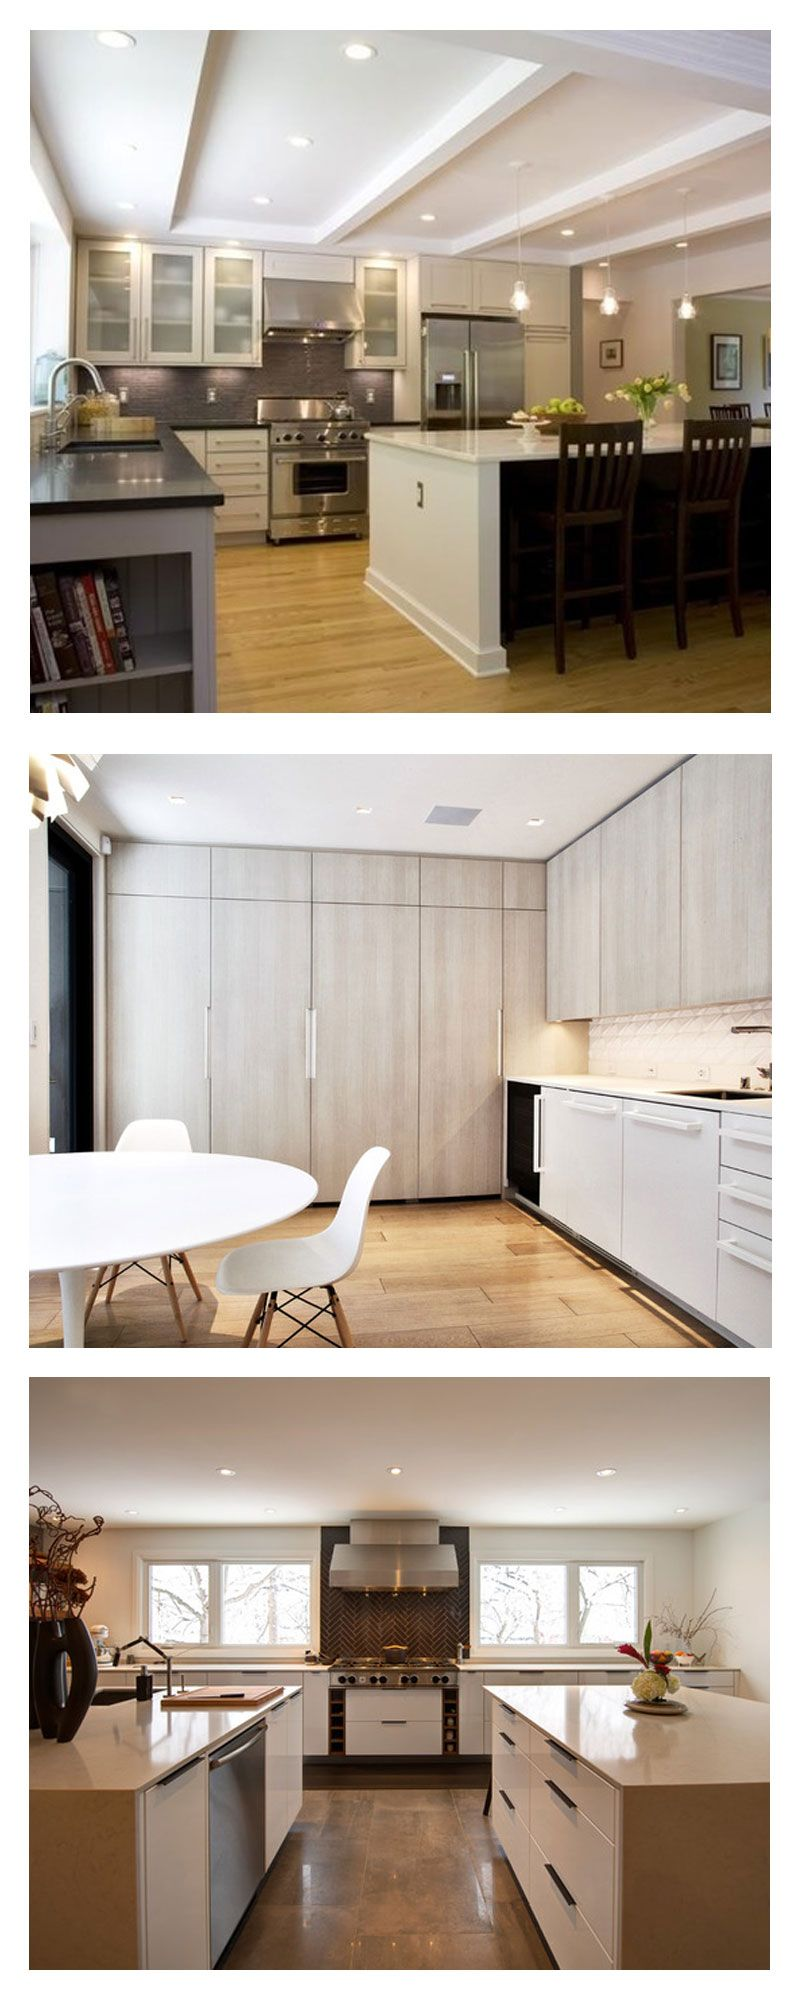 Create A Unique Kitchen Style With Over 750 Colors, 10 Metal Trims, And  Nearly · InfiniteKitchen Ideas Part 58